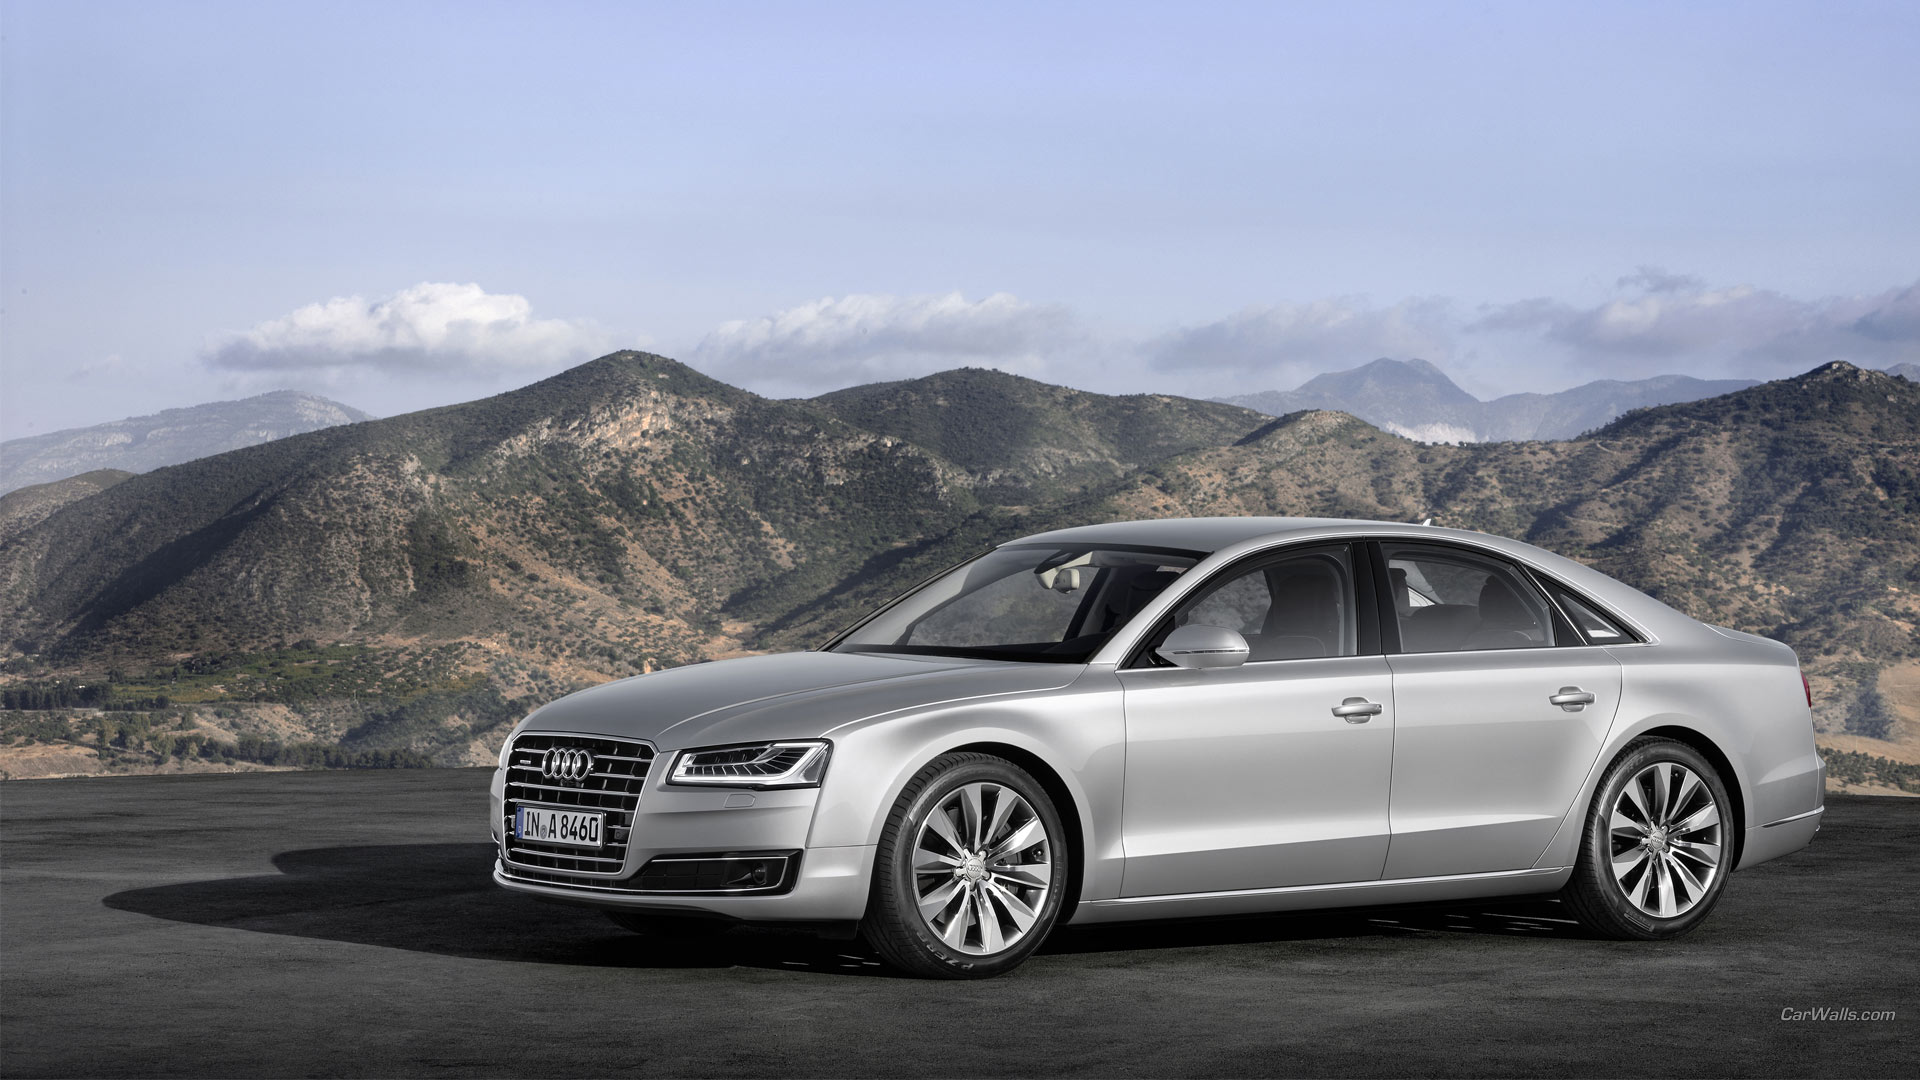 10 2014 audi a8 l hd wallpapers backgrounds wallpaper abyss. Black Bedroom Furniture Sets. Home Design Ideas